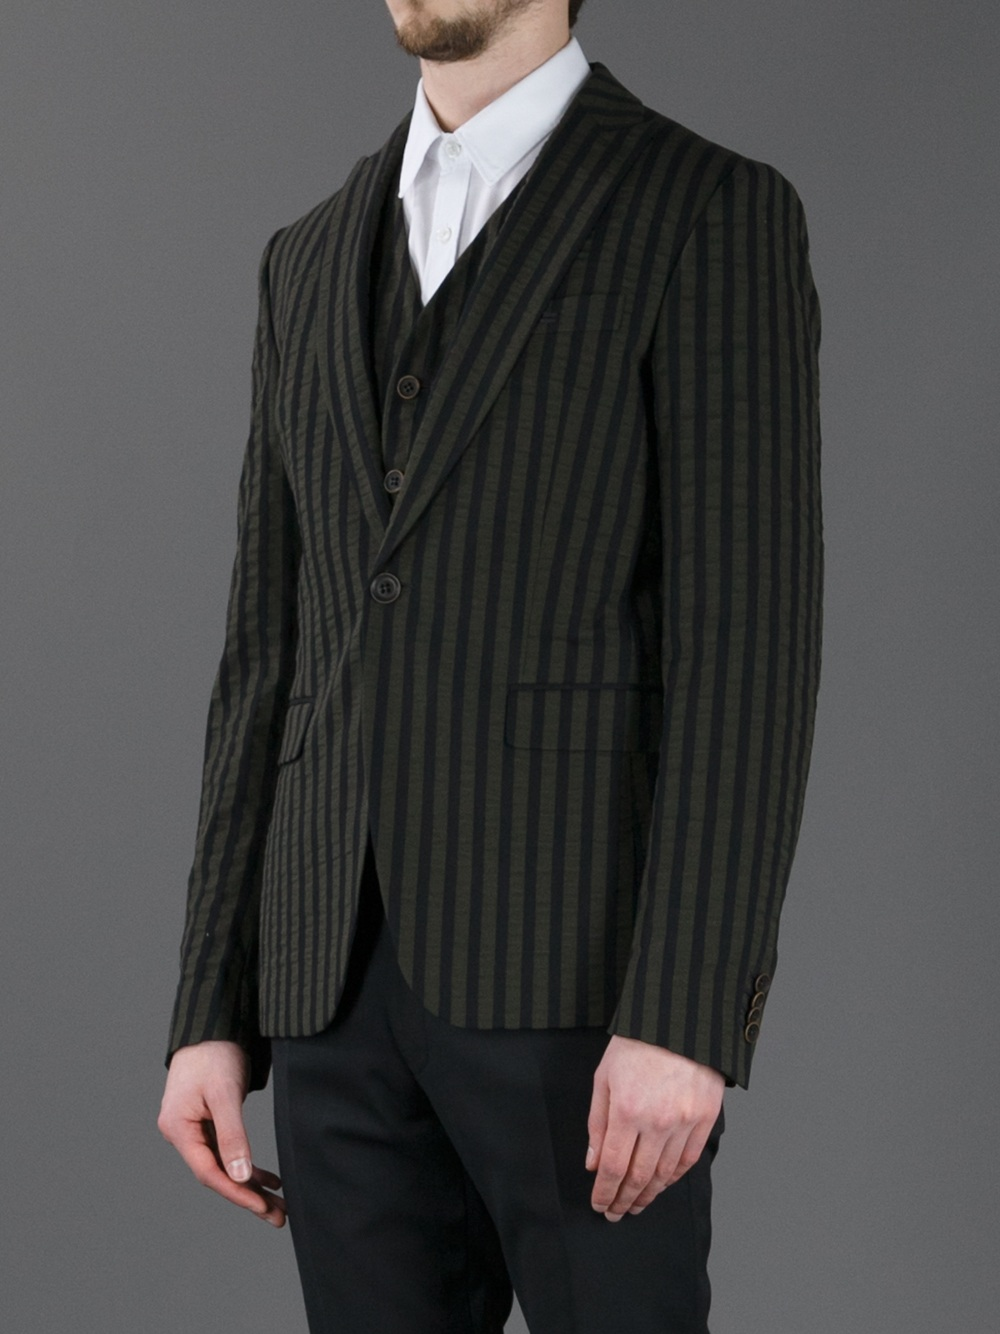 Find great deals on eBay for mens striped blazer. Shop with confidence.